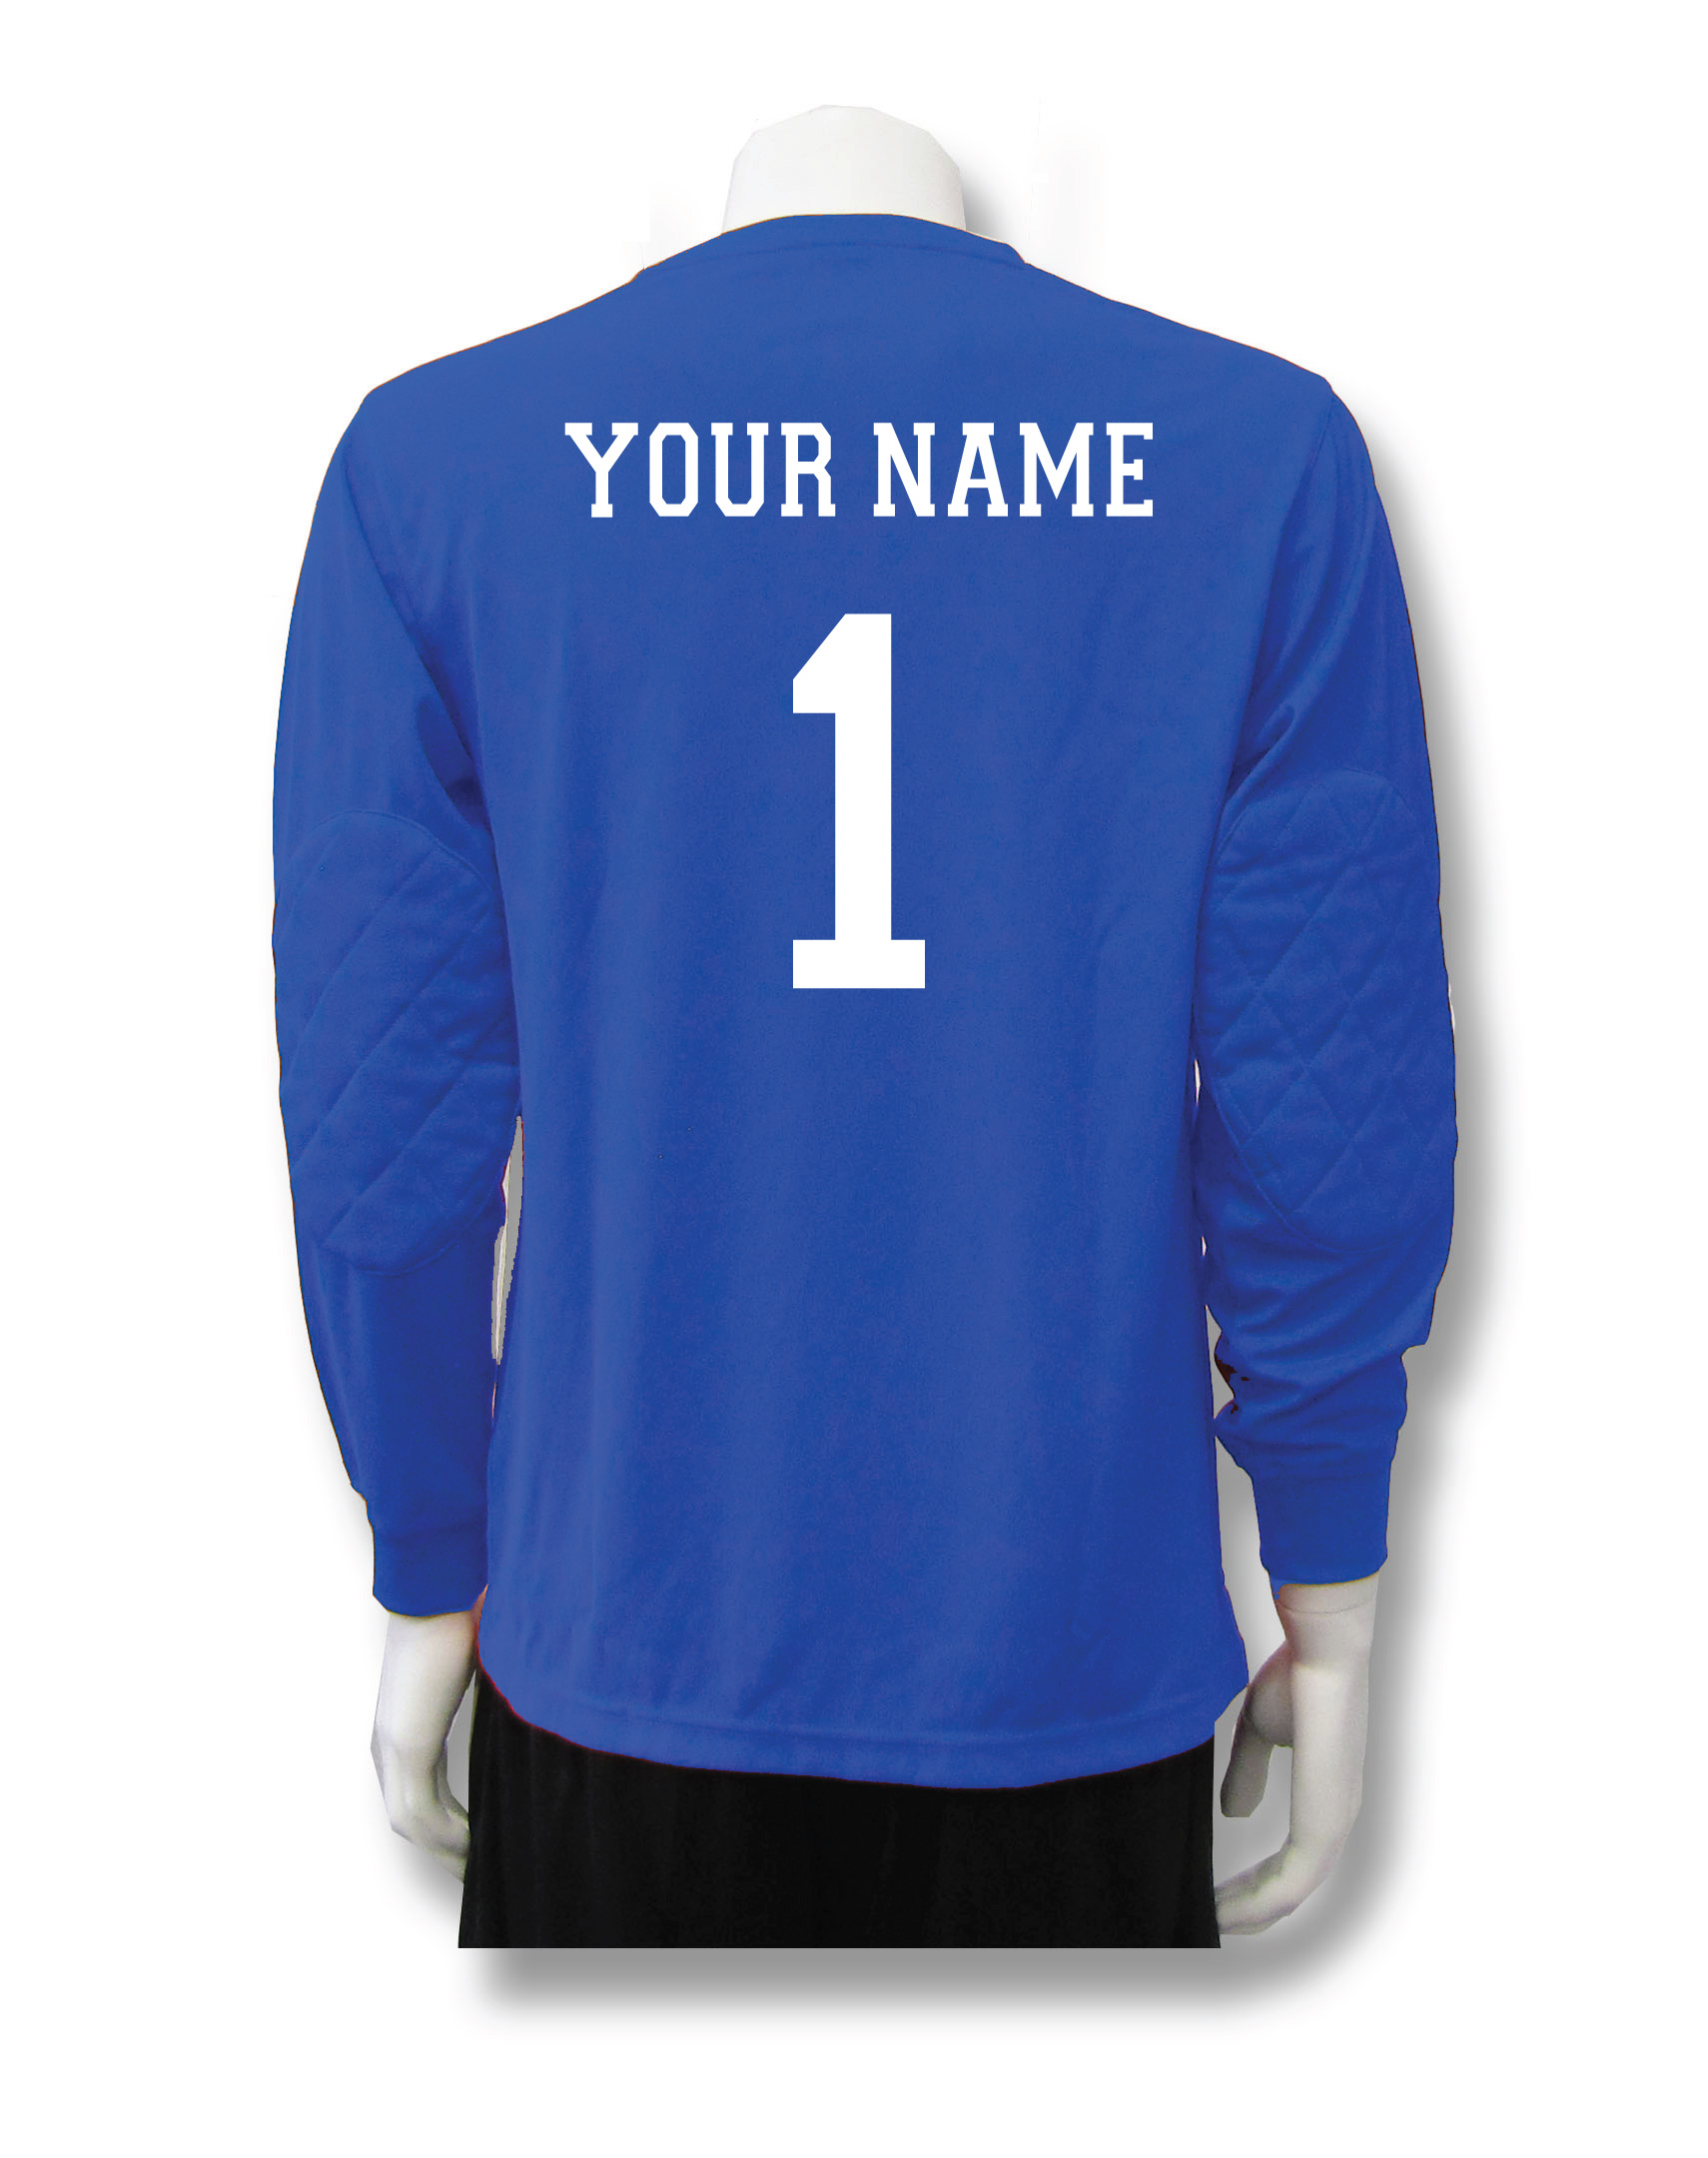 Long sleeve soccer keeper jersey in royal blue with name and number by Code Four Athletics